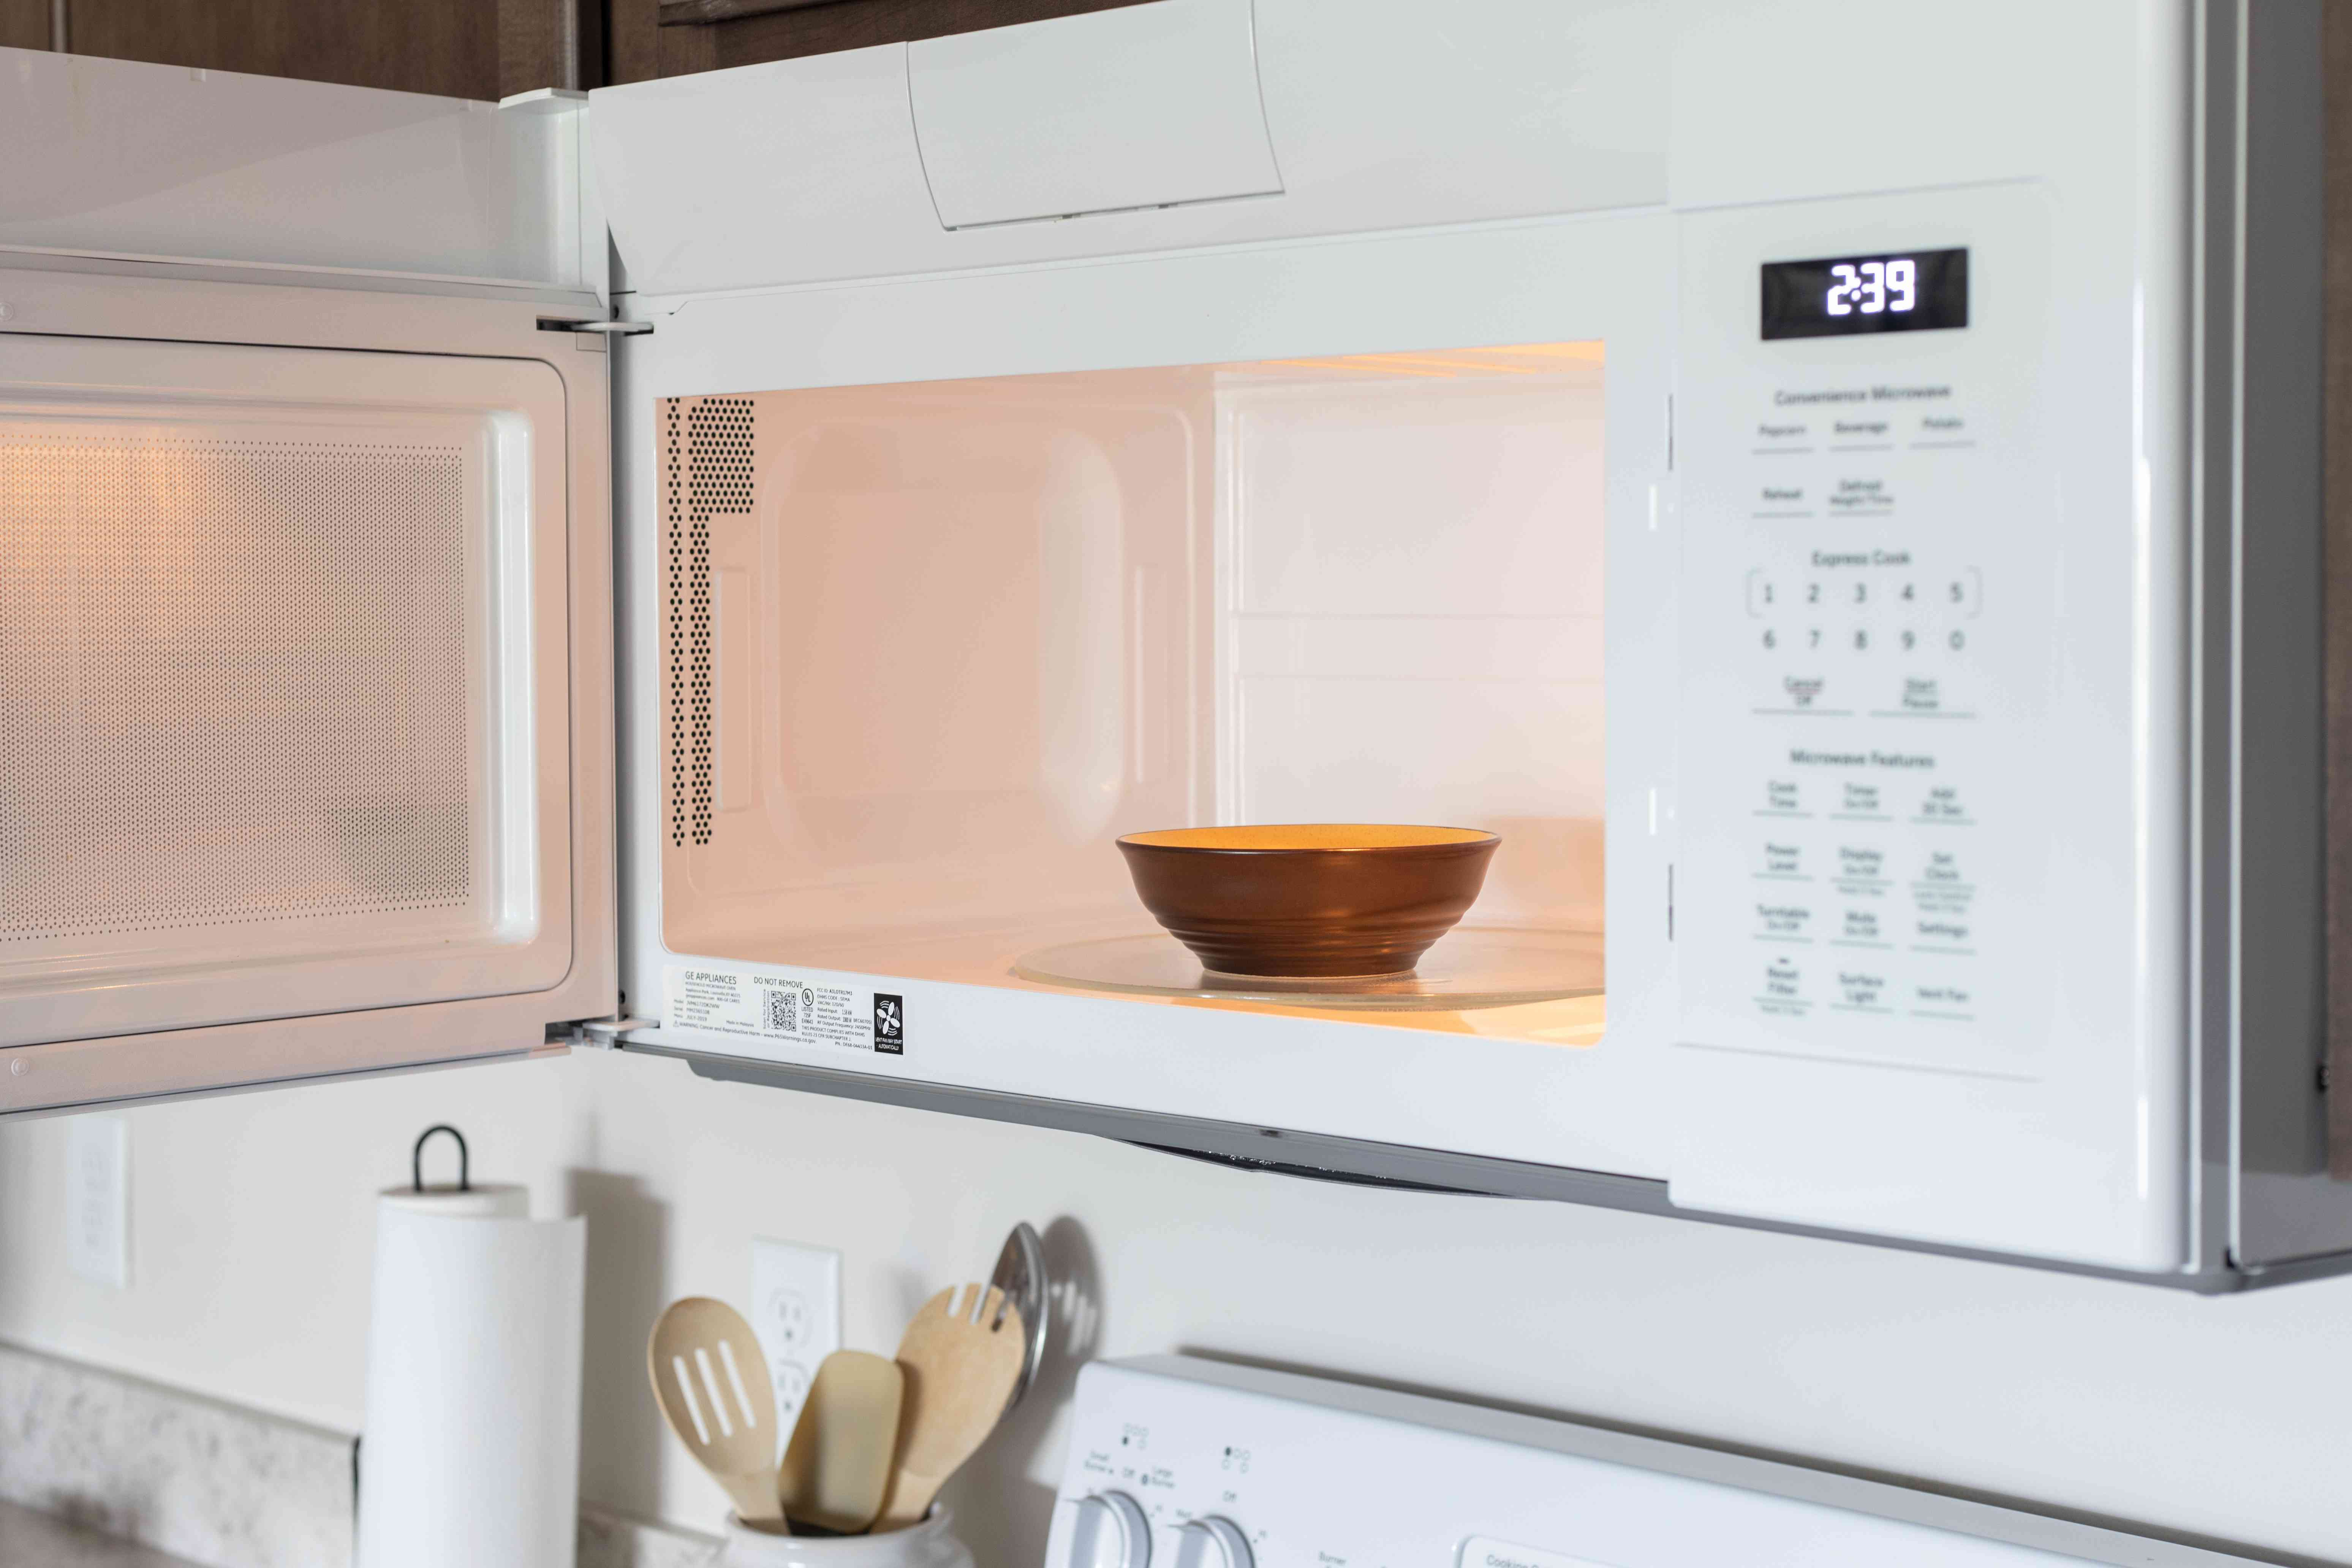 Microwave door open with bowl sitting inside